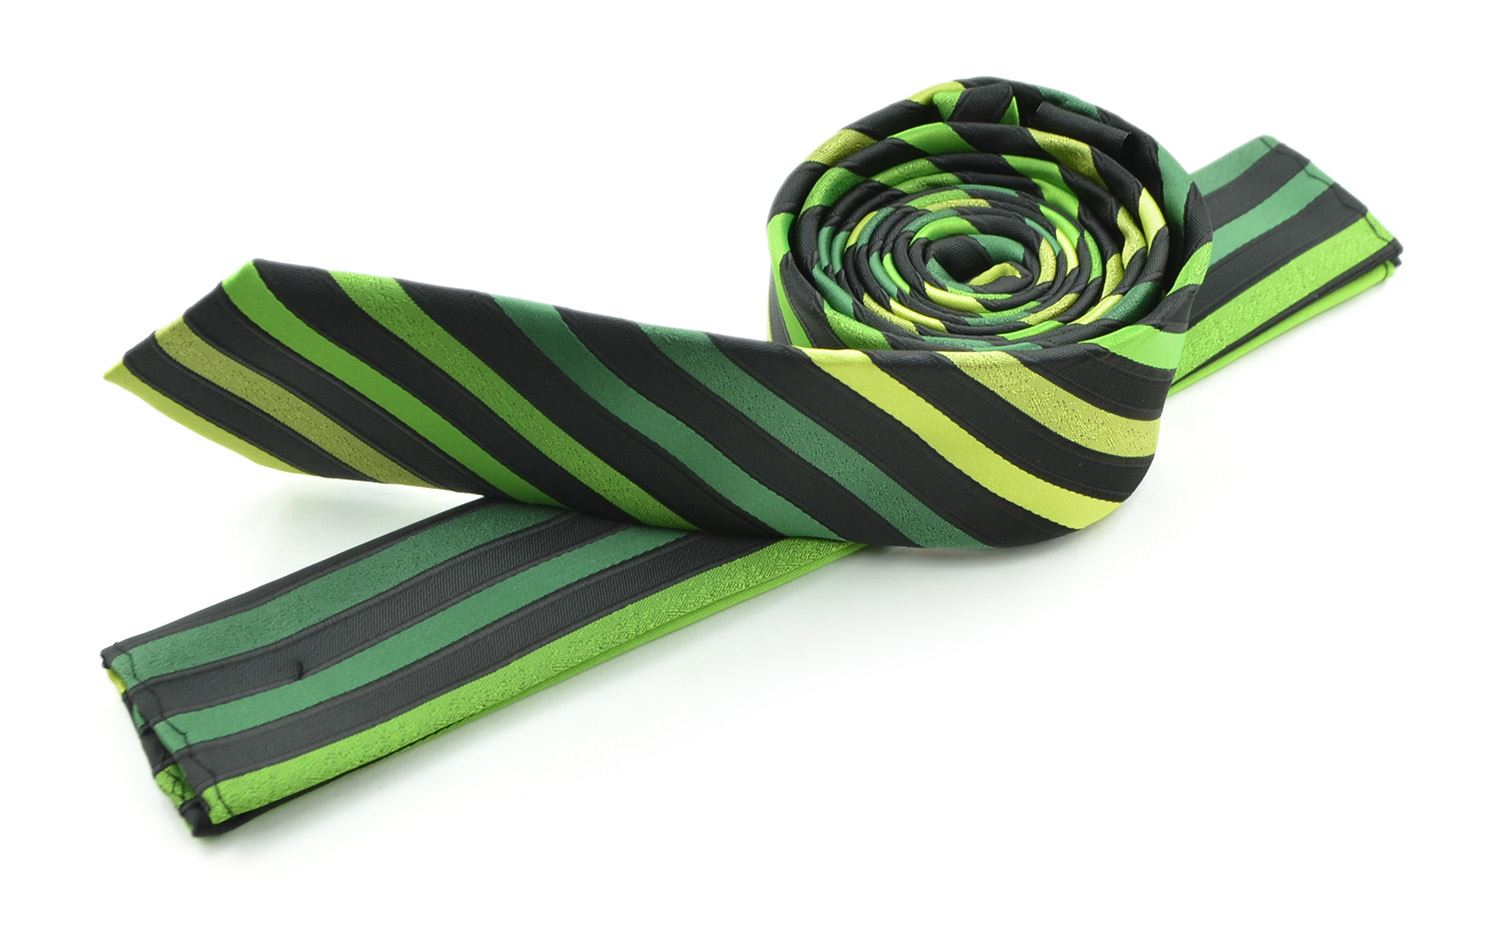 Moda Di Raza Men's Slanted Subtle Striped Ties Trendy Imported Fashion Necktie-Green